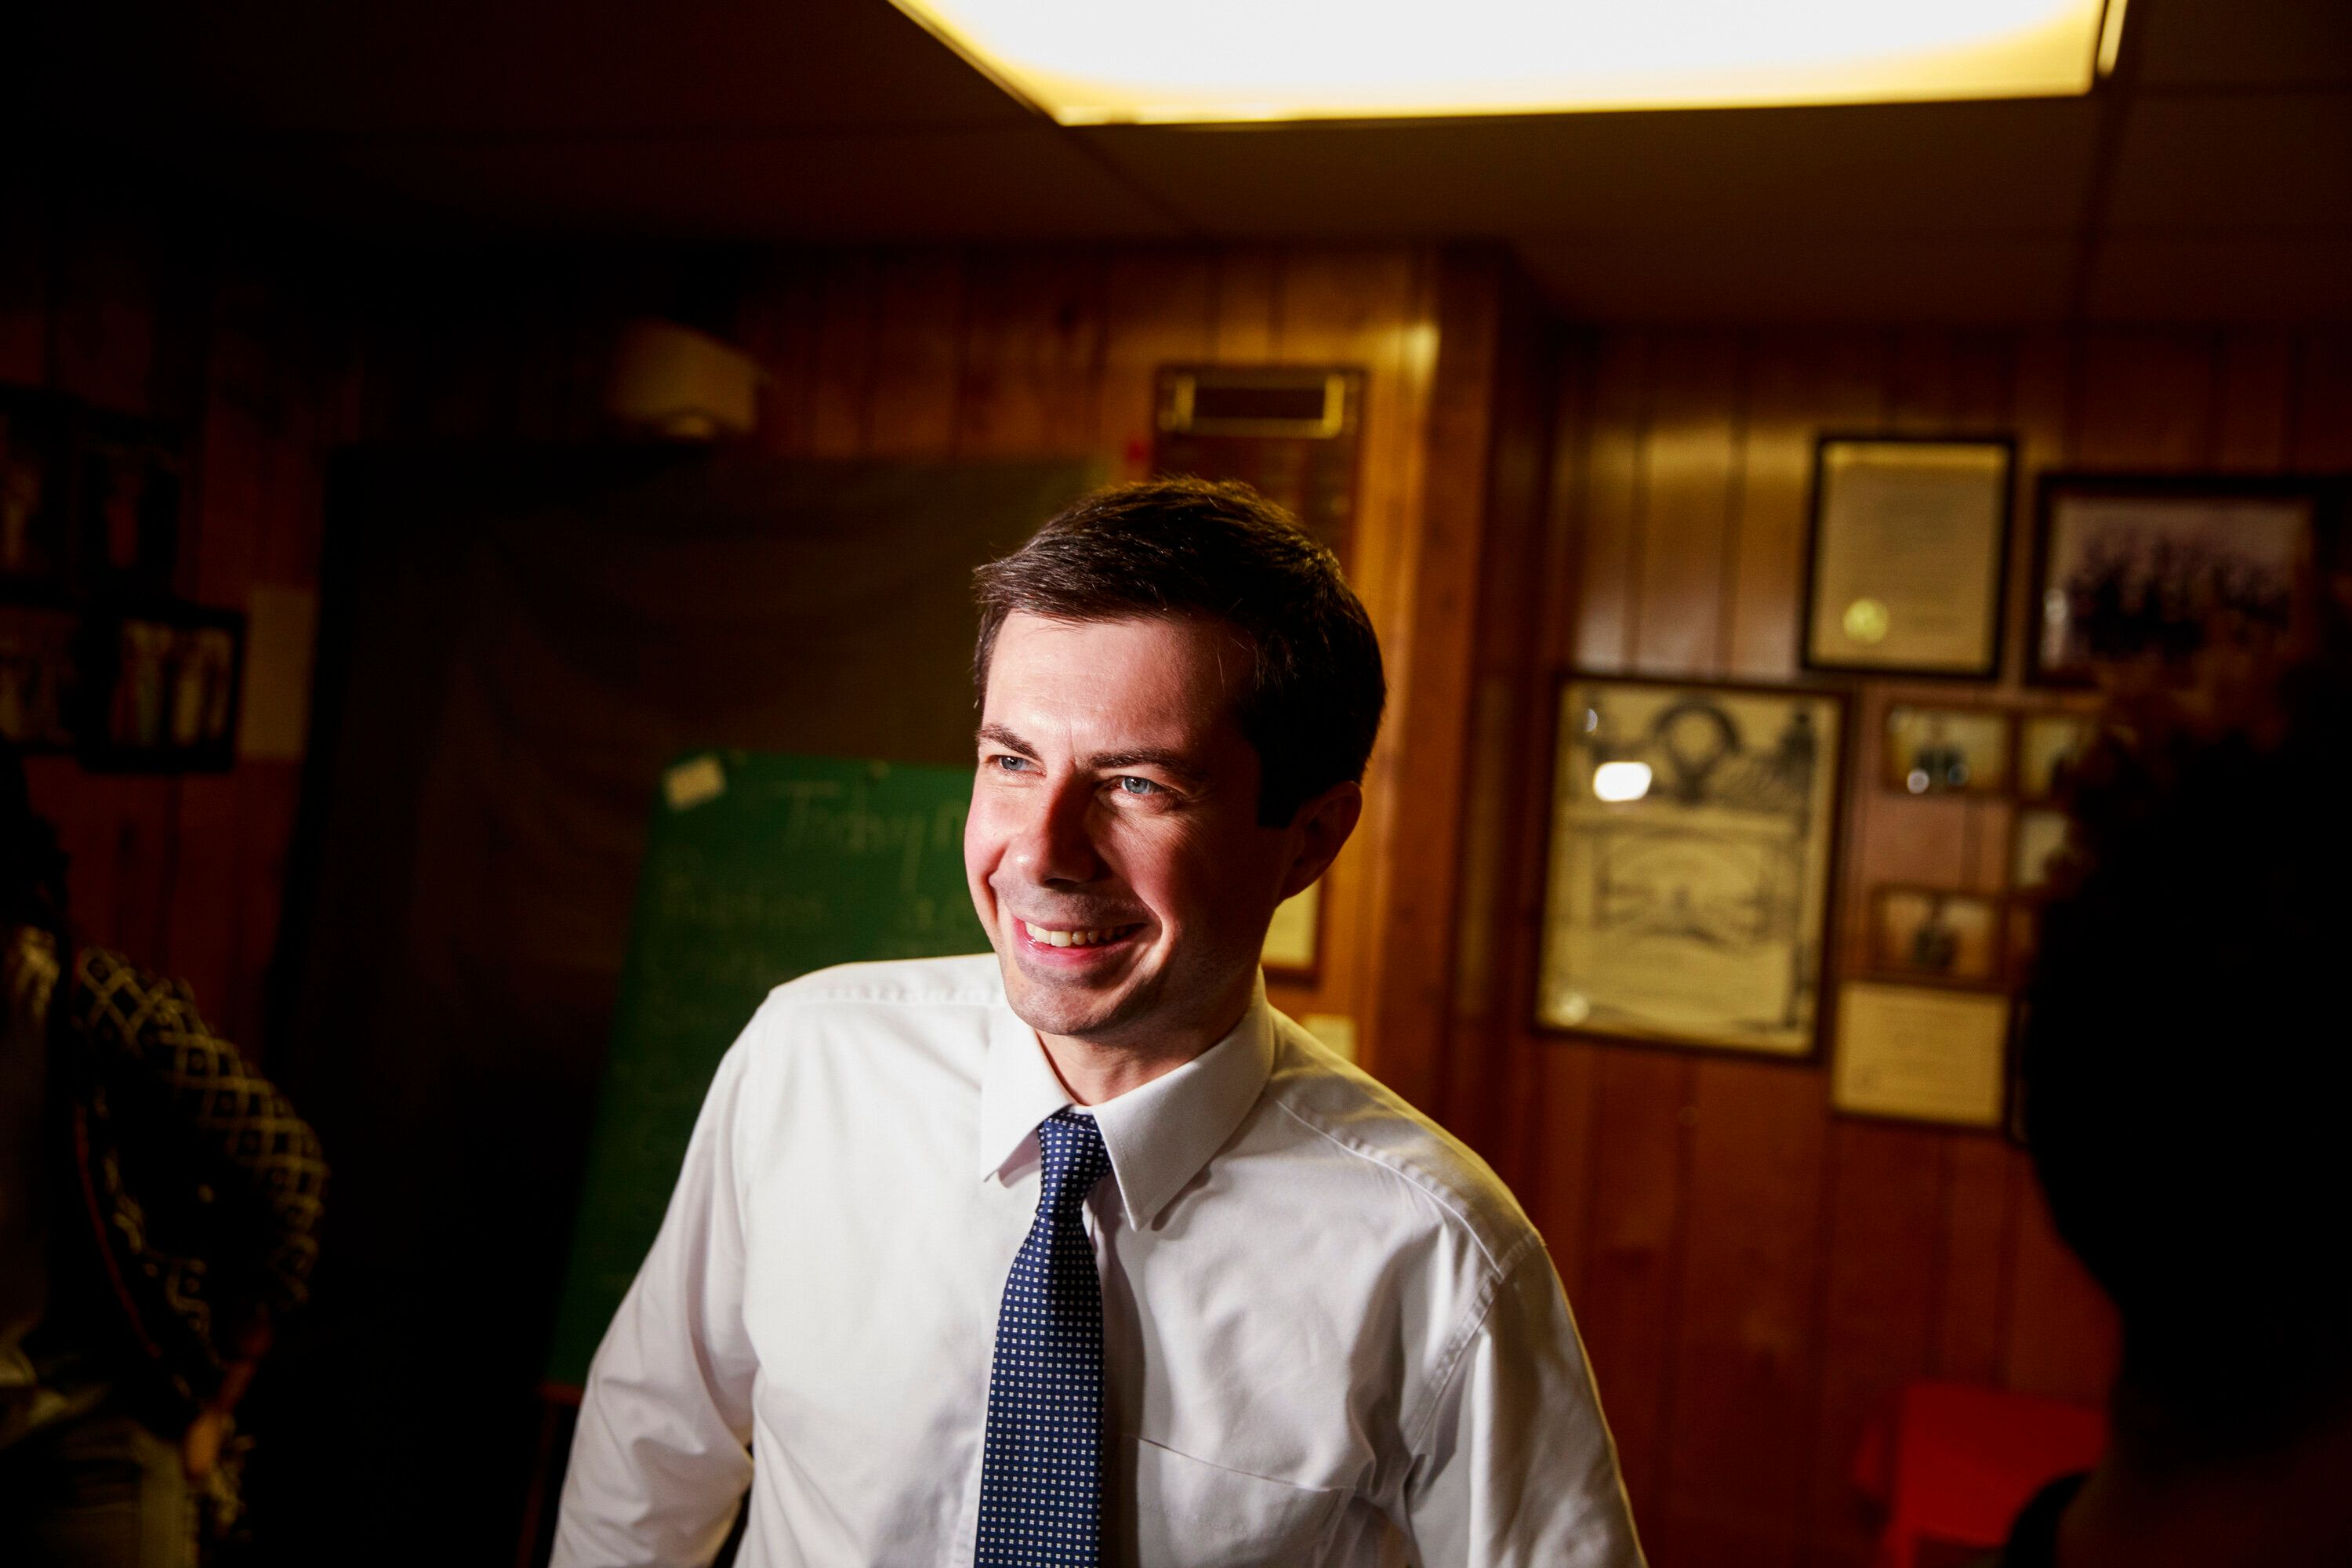 SOUTH BEND, INDIANA, UNITED STATES - 2019/04/22: South Bend, Indiana Mayor Pete Buttigieg, who is running as a Democrat for President of the United States seen attending the Dyngus Day Drive Street Renaming at the South Bend Elks Lodge. Dyngus Day is a traditional Polish holiday, but its also a time when the South Bend candidates traditionally campaigned for the office in the city since Indiana's primary election is in early May. The inside of the club was standing room only, and Buttigieg struggled to get past his crowd of supporters and some members of the media were not able to get into the building. The crowd of supporters stood inside, and after a few minutes Buttigieg exited, and was whisked away. (Photo by Jeremy Hogan/SOPA Images/LightRocket via Getty Images)